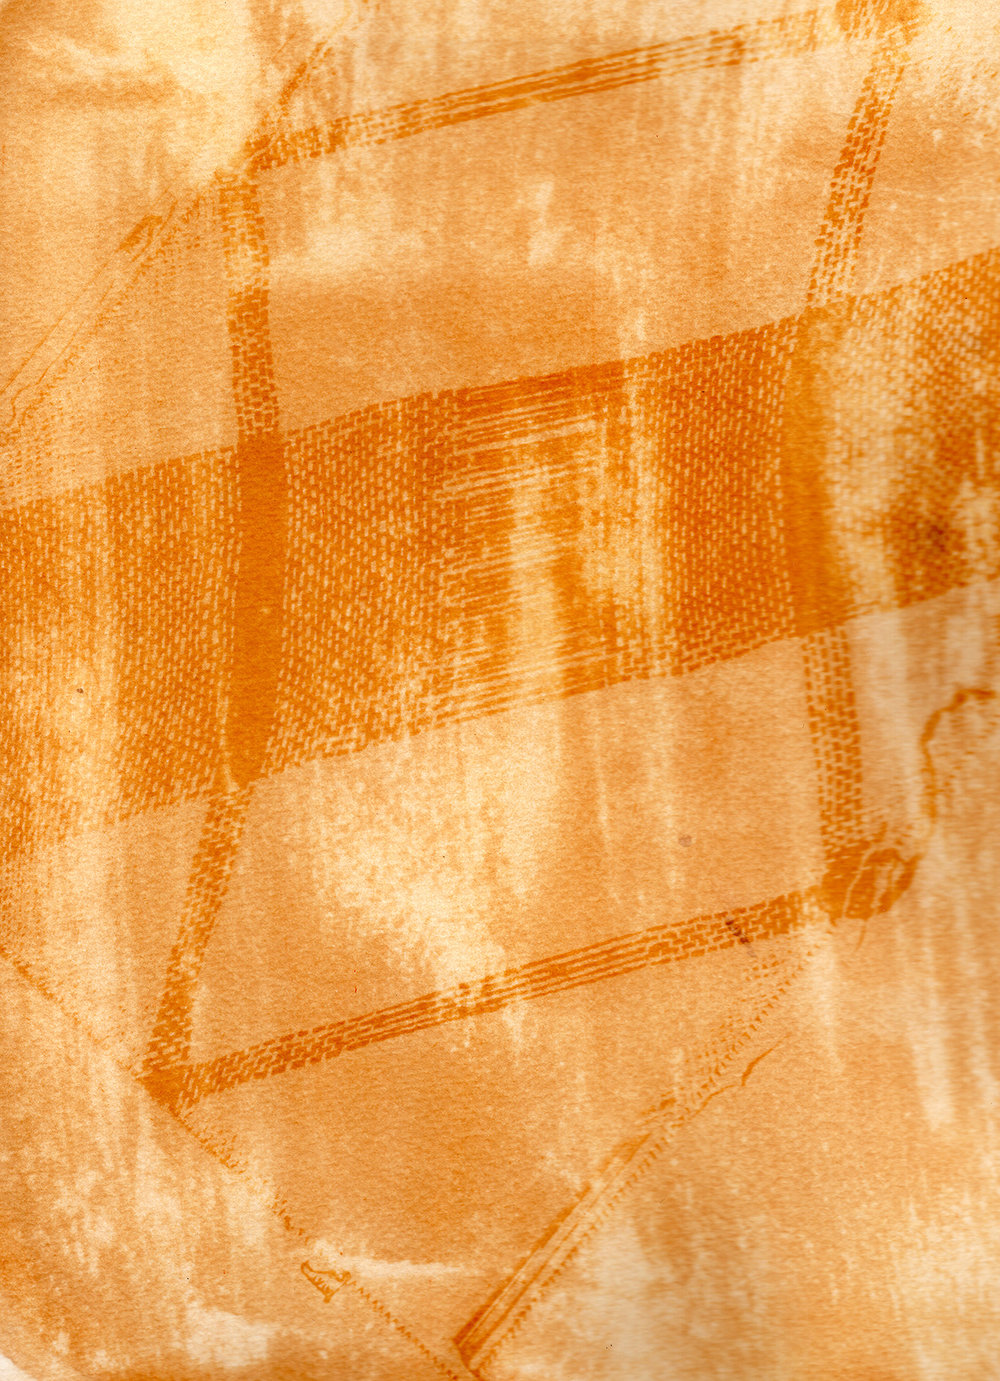 """Detail of a weave in process, made by the """"Hilanderas del Fin del Mundo"""", a group of women dedicated to retake traditions of embroidery and weaving by invoking local production against the advance of imports using natural raw materials produced in the island. Scan of an Anthotype made with natural dyes created with Turmeric. Photographer: Luján Agusti. Tierra del Fuego. April 15th, 2018"""